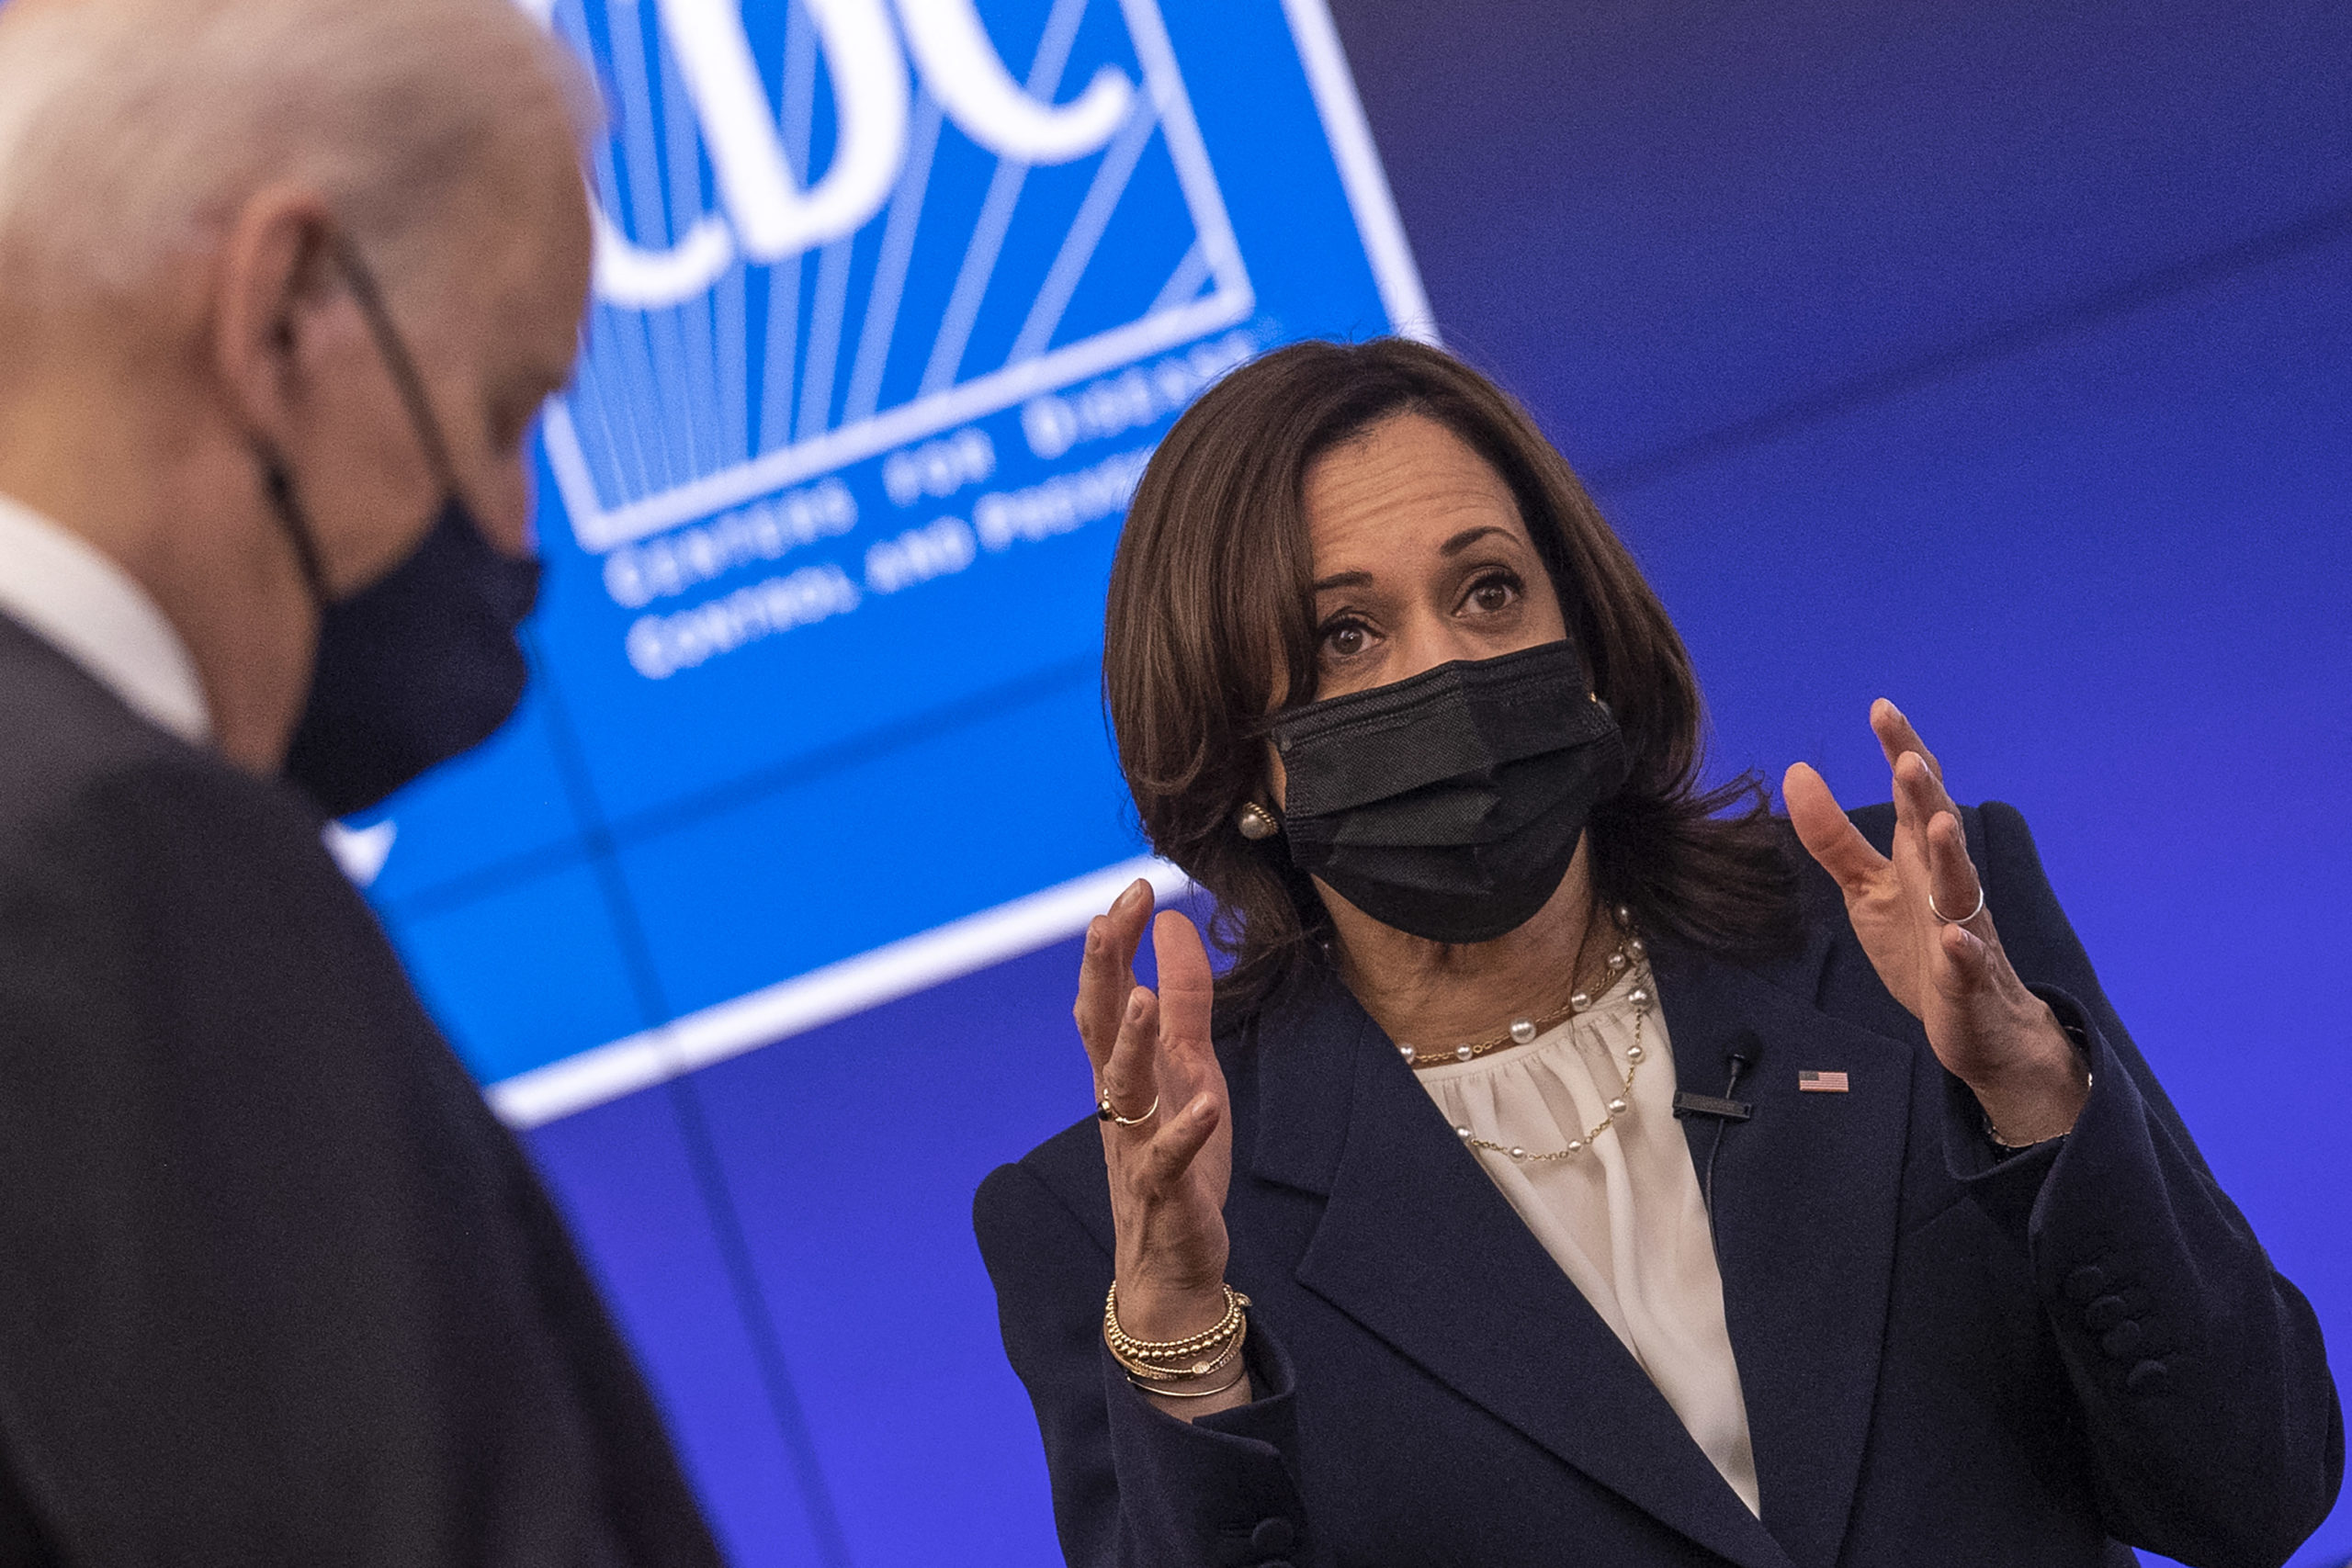 US President Joe Biden (L) and Vice President Kamala Harris (C) tour the Centers for Disease Control and Prevention in Atlanta, Georgia, on March 19, 2021. (Photo by Eric BARADAT / AFP) (Photo by ERIC BARADAT/AFP via Getty Images)